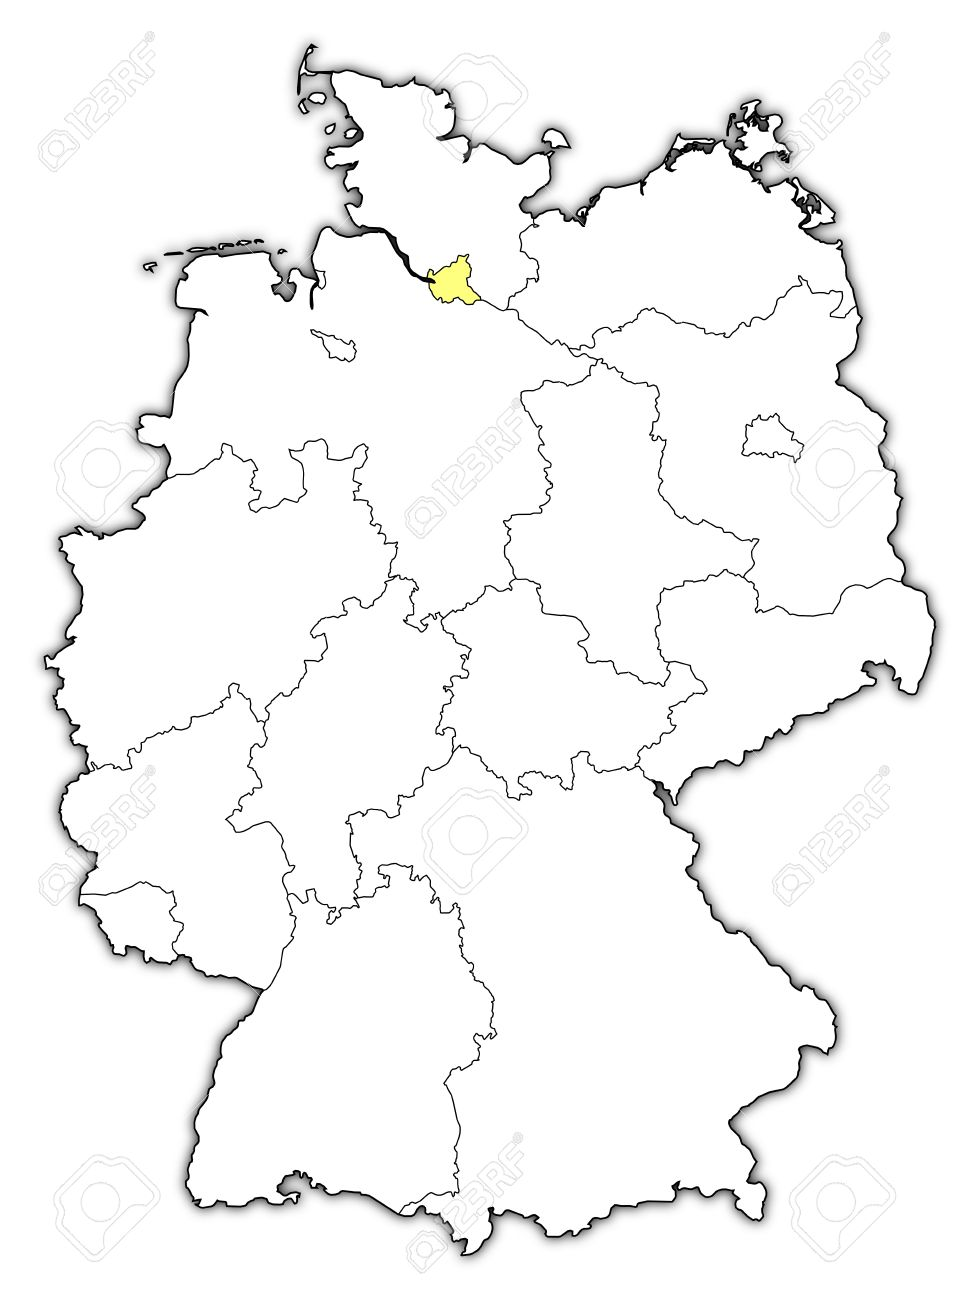 Political map of germany with the several states where hamburg political map of germany with the several states where hamburg is highlighted stock vector gumiabroncs Choice Image